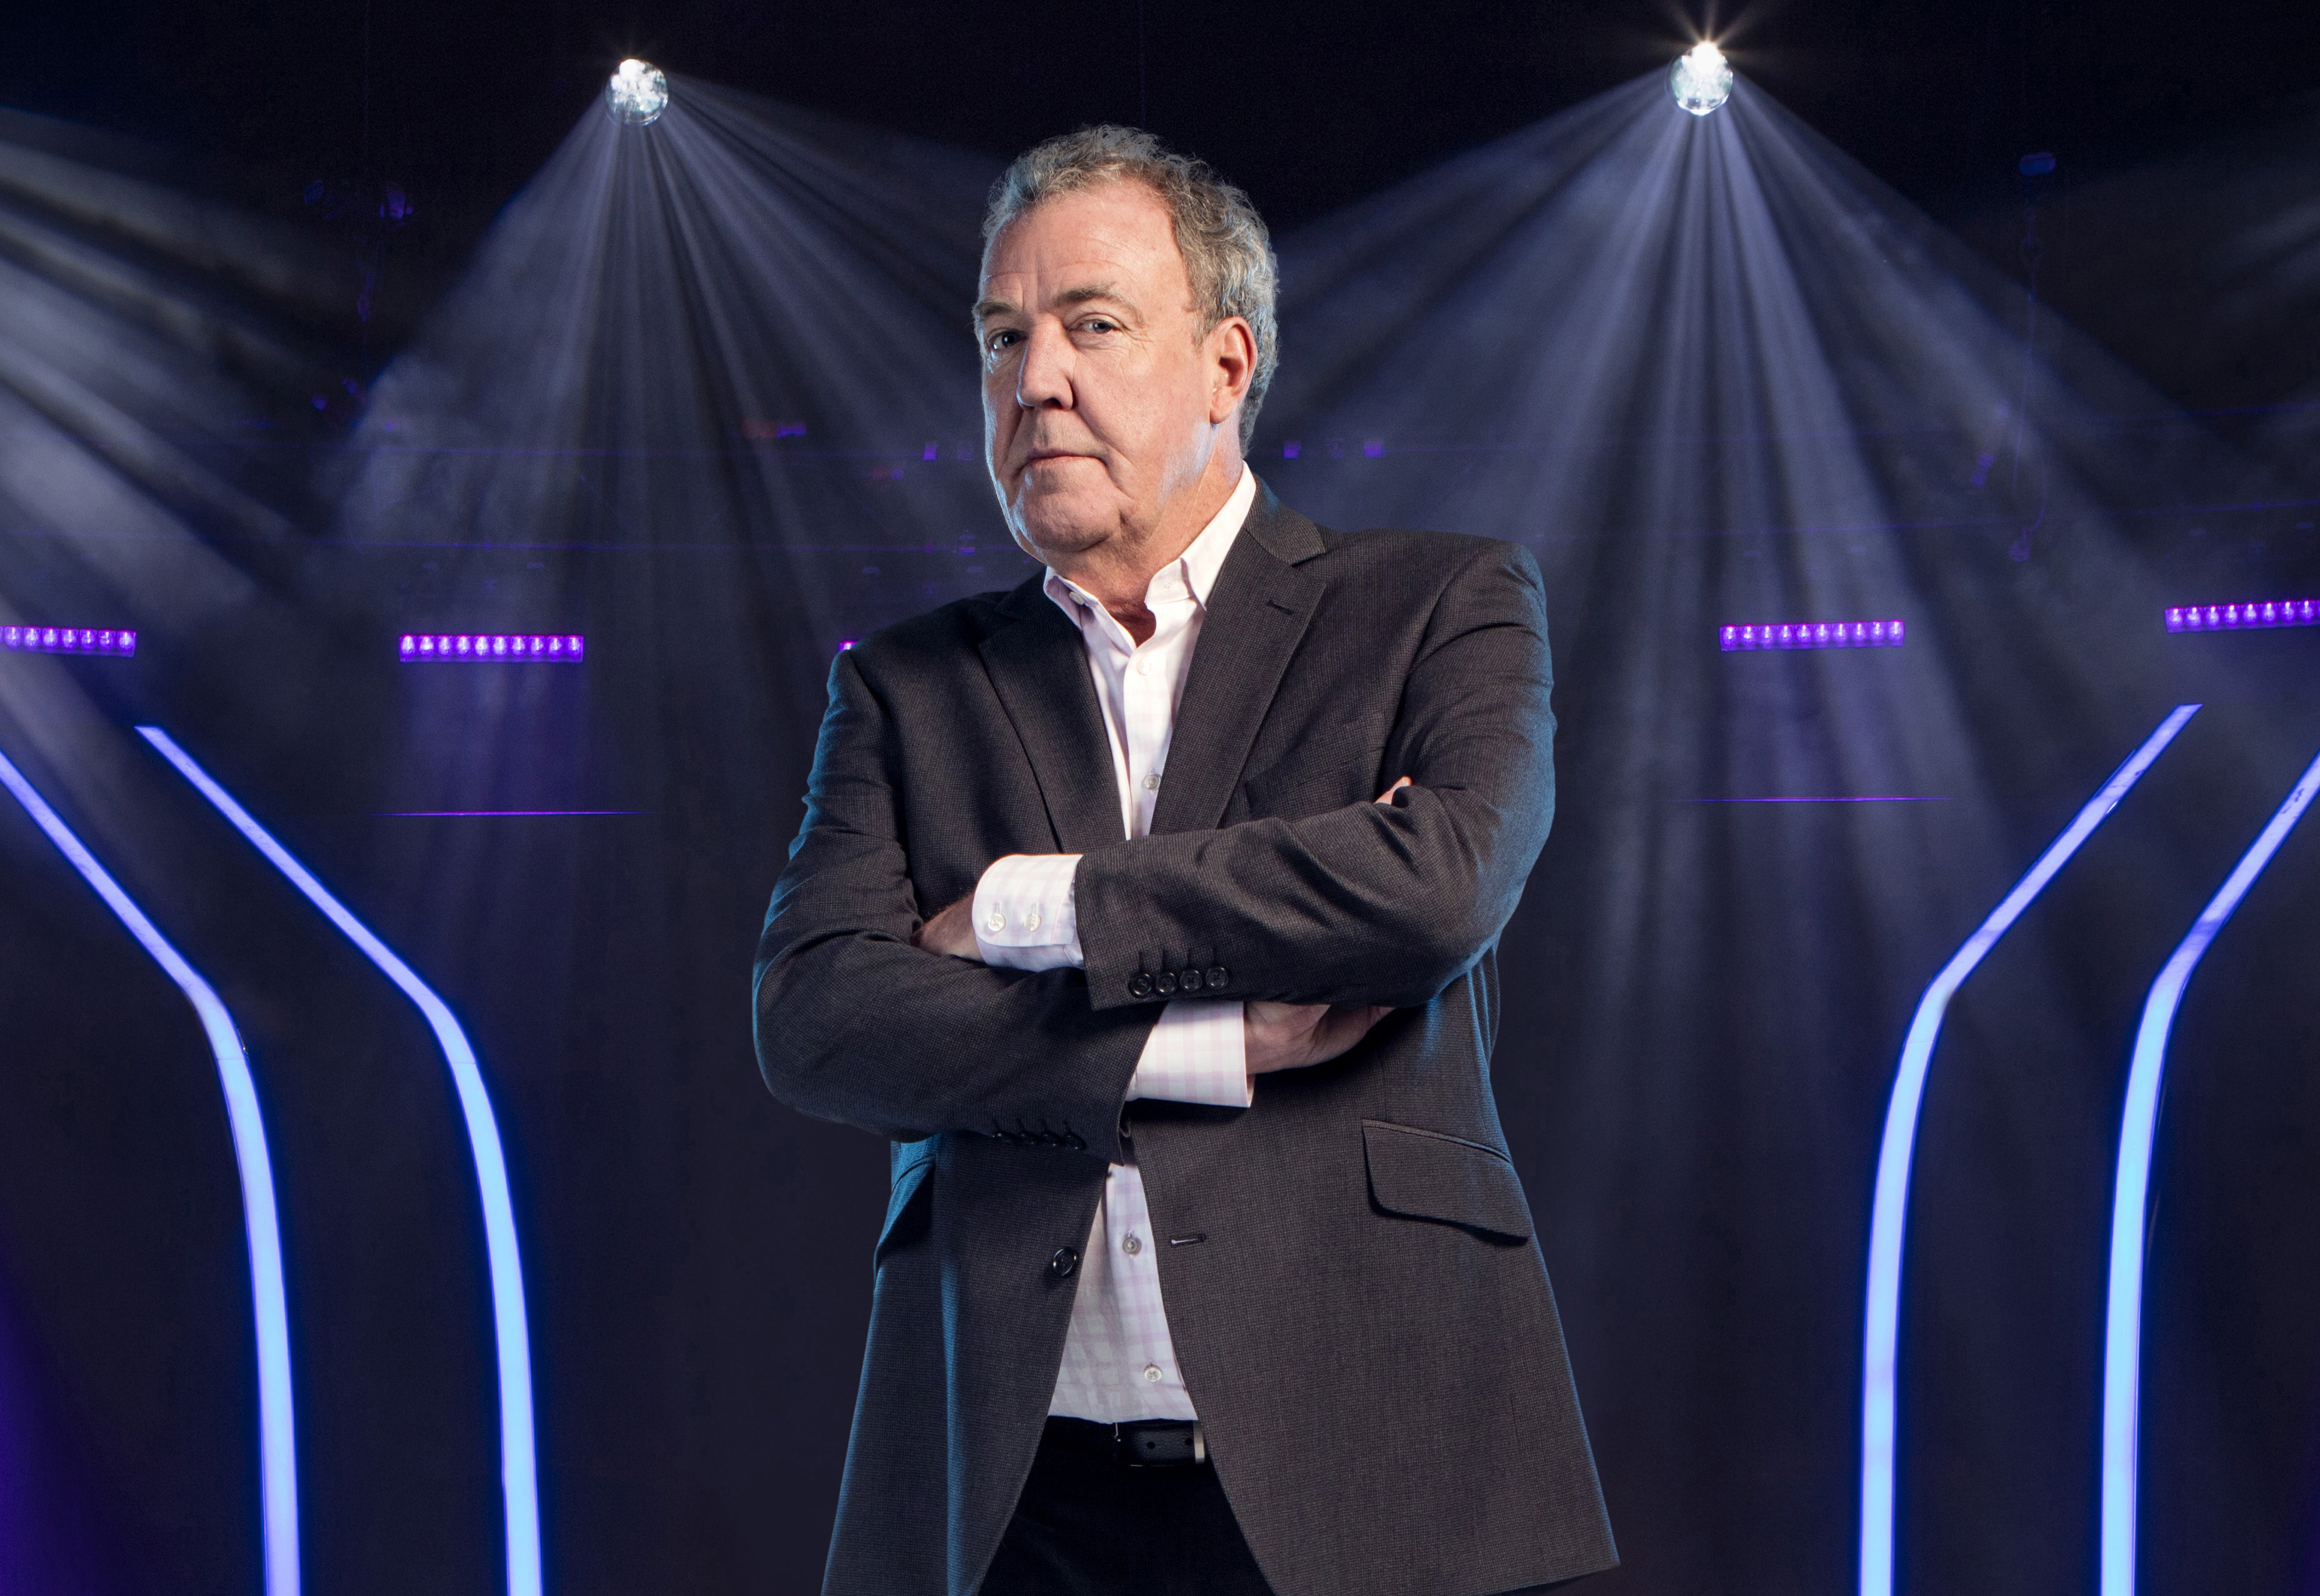 Jeremy Clarkson: Who Wants To Be A Millionaire board game with two people who were actually billionaires!